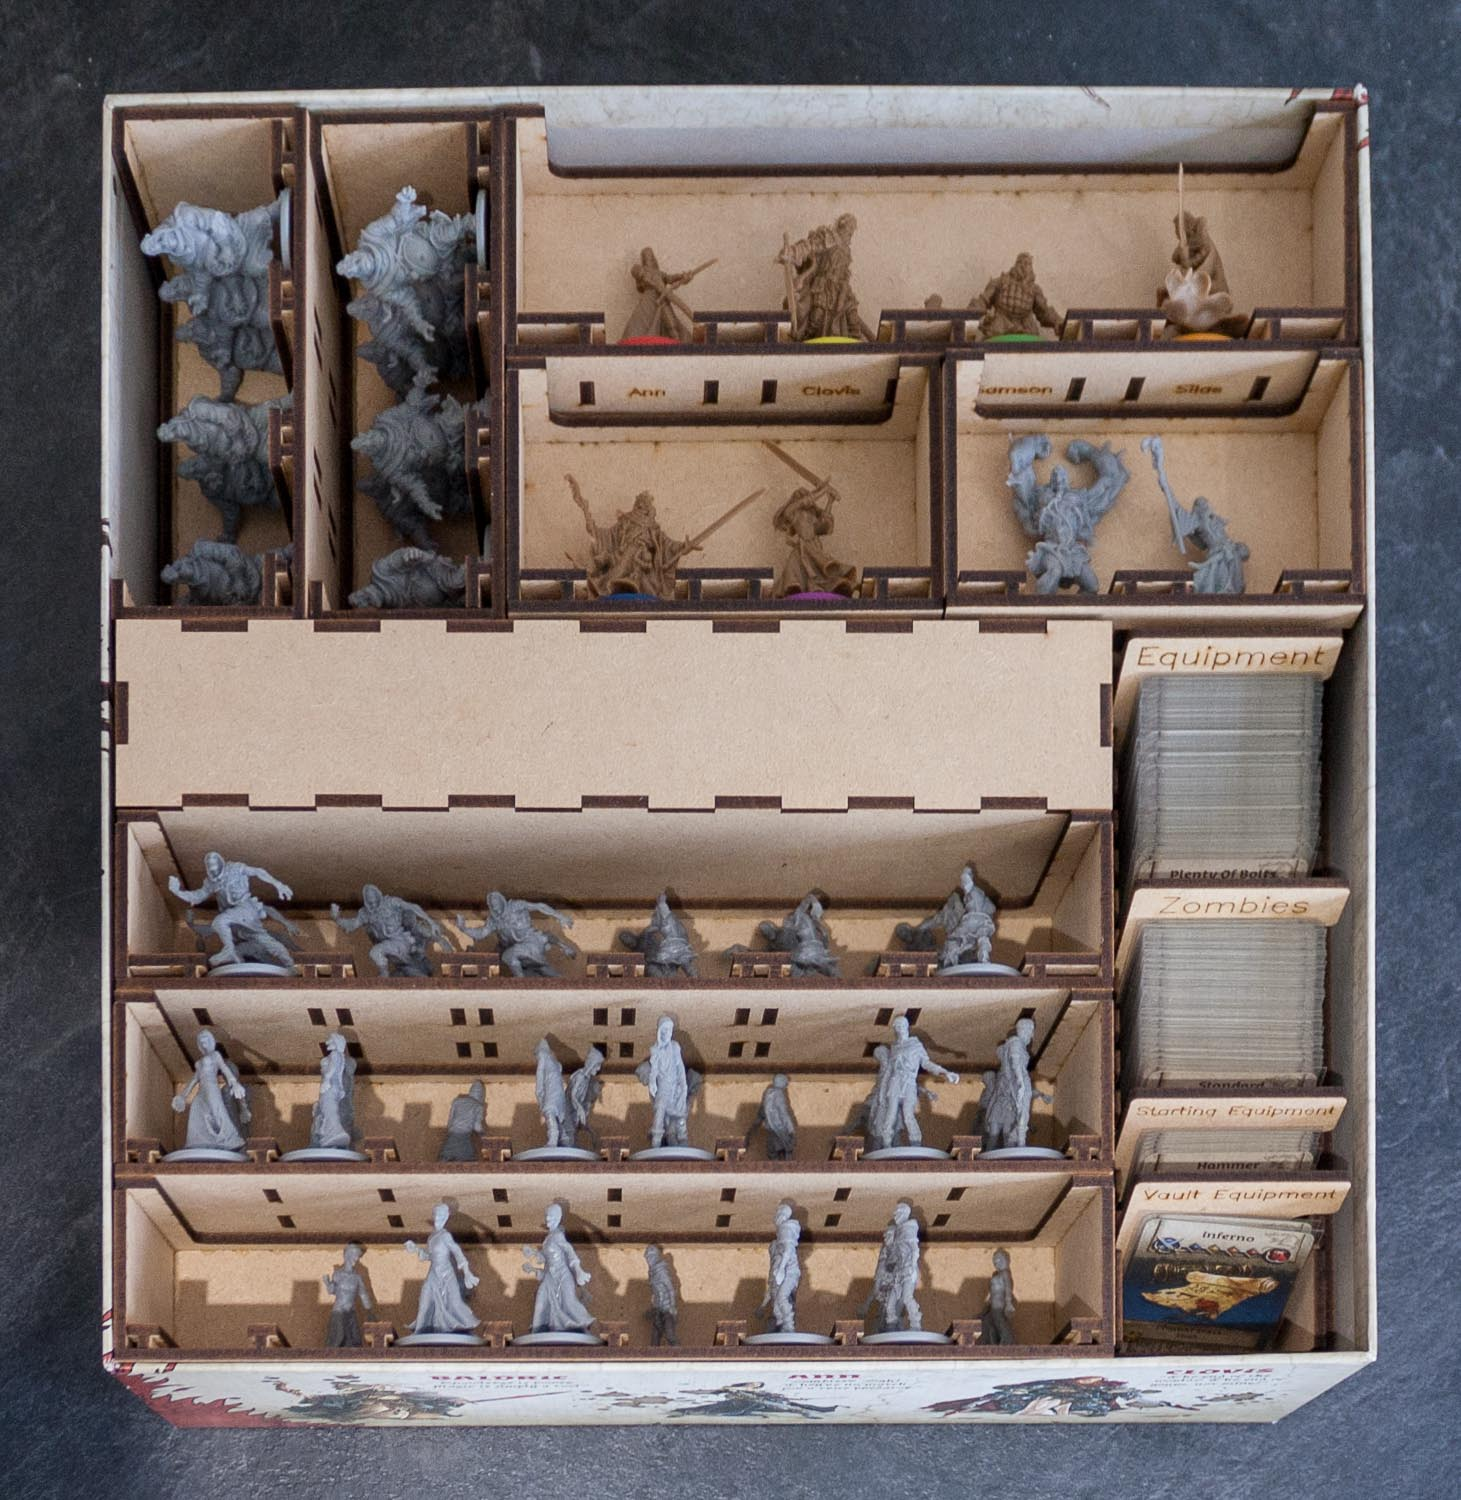 Black Plague Box Organiser - Loaded box